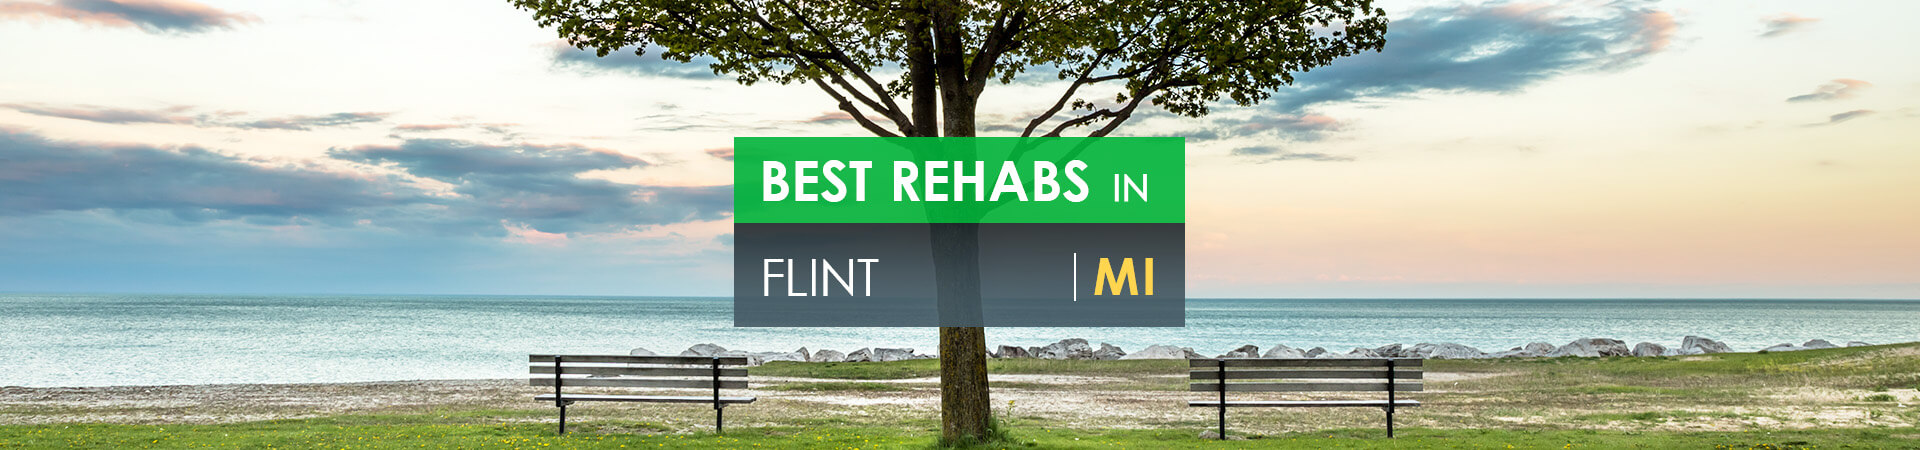 Best rehabs in Flint, MI